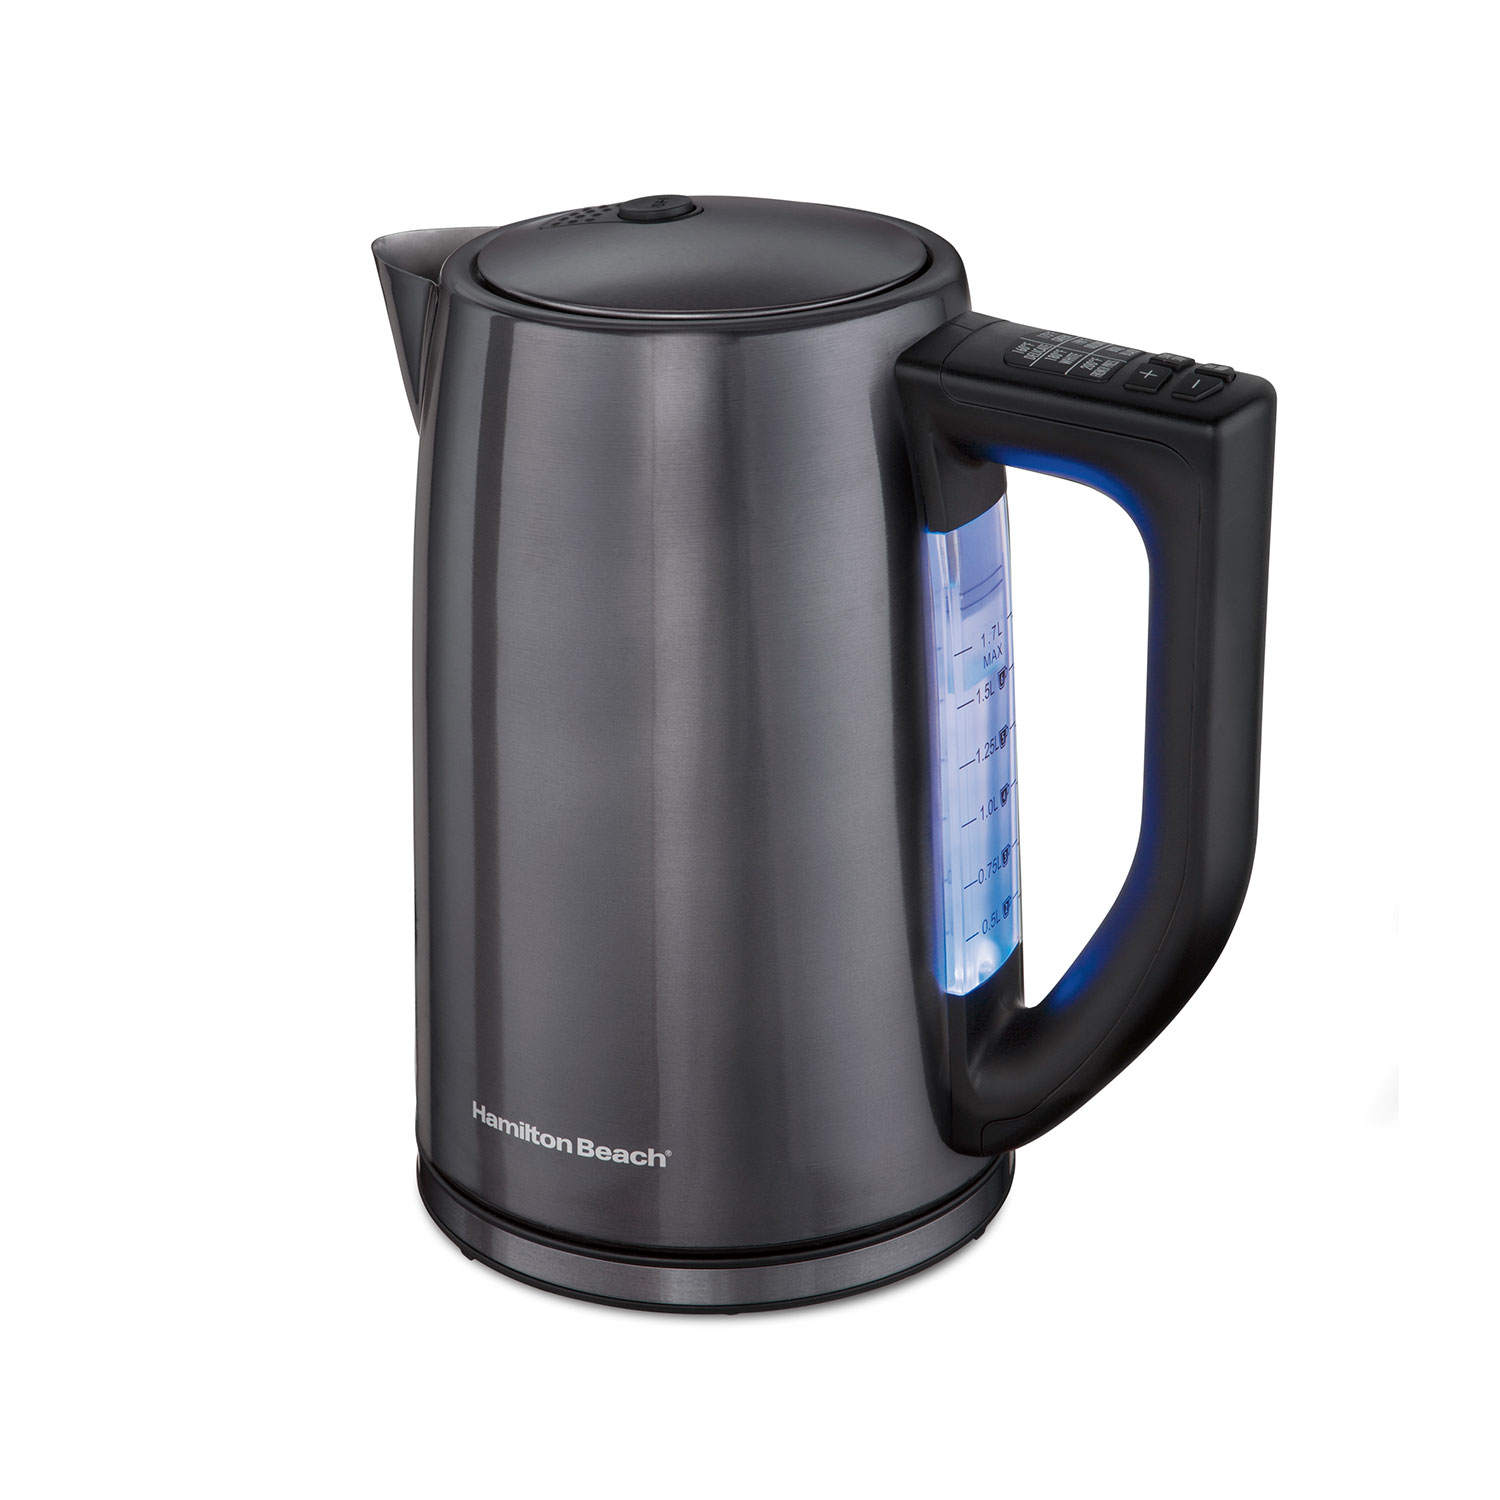 Black Stainless 1.7 Liter Variable Temperature Kettle (41027)